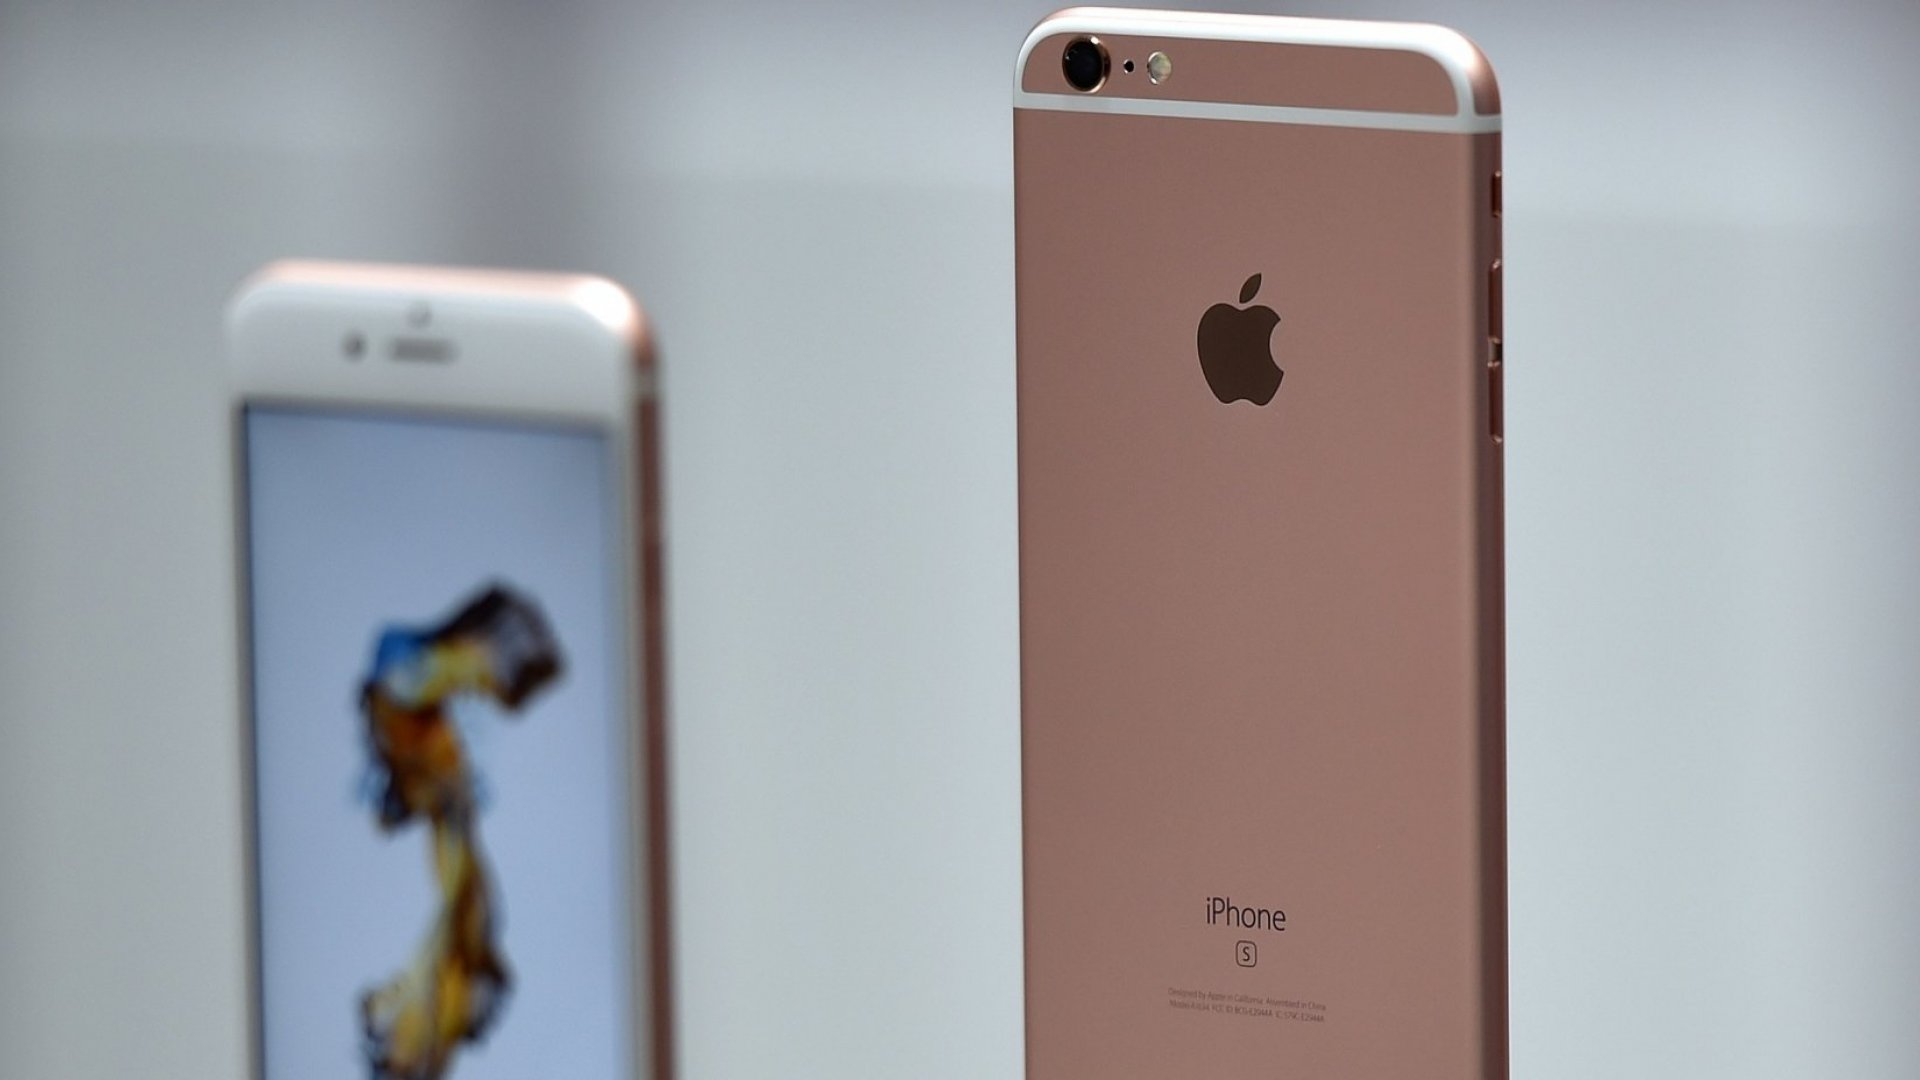 Amid iPhone Sales Worries, Apple Shares Continue to Fall